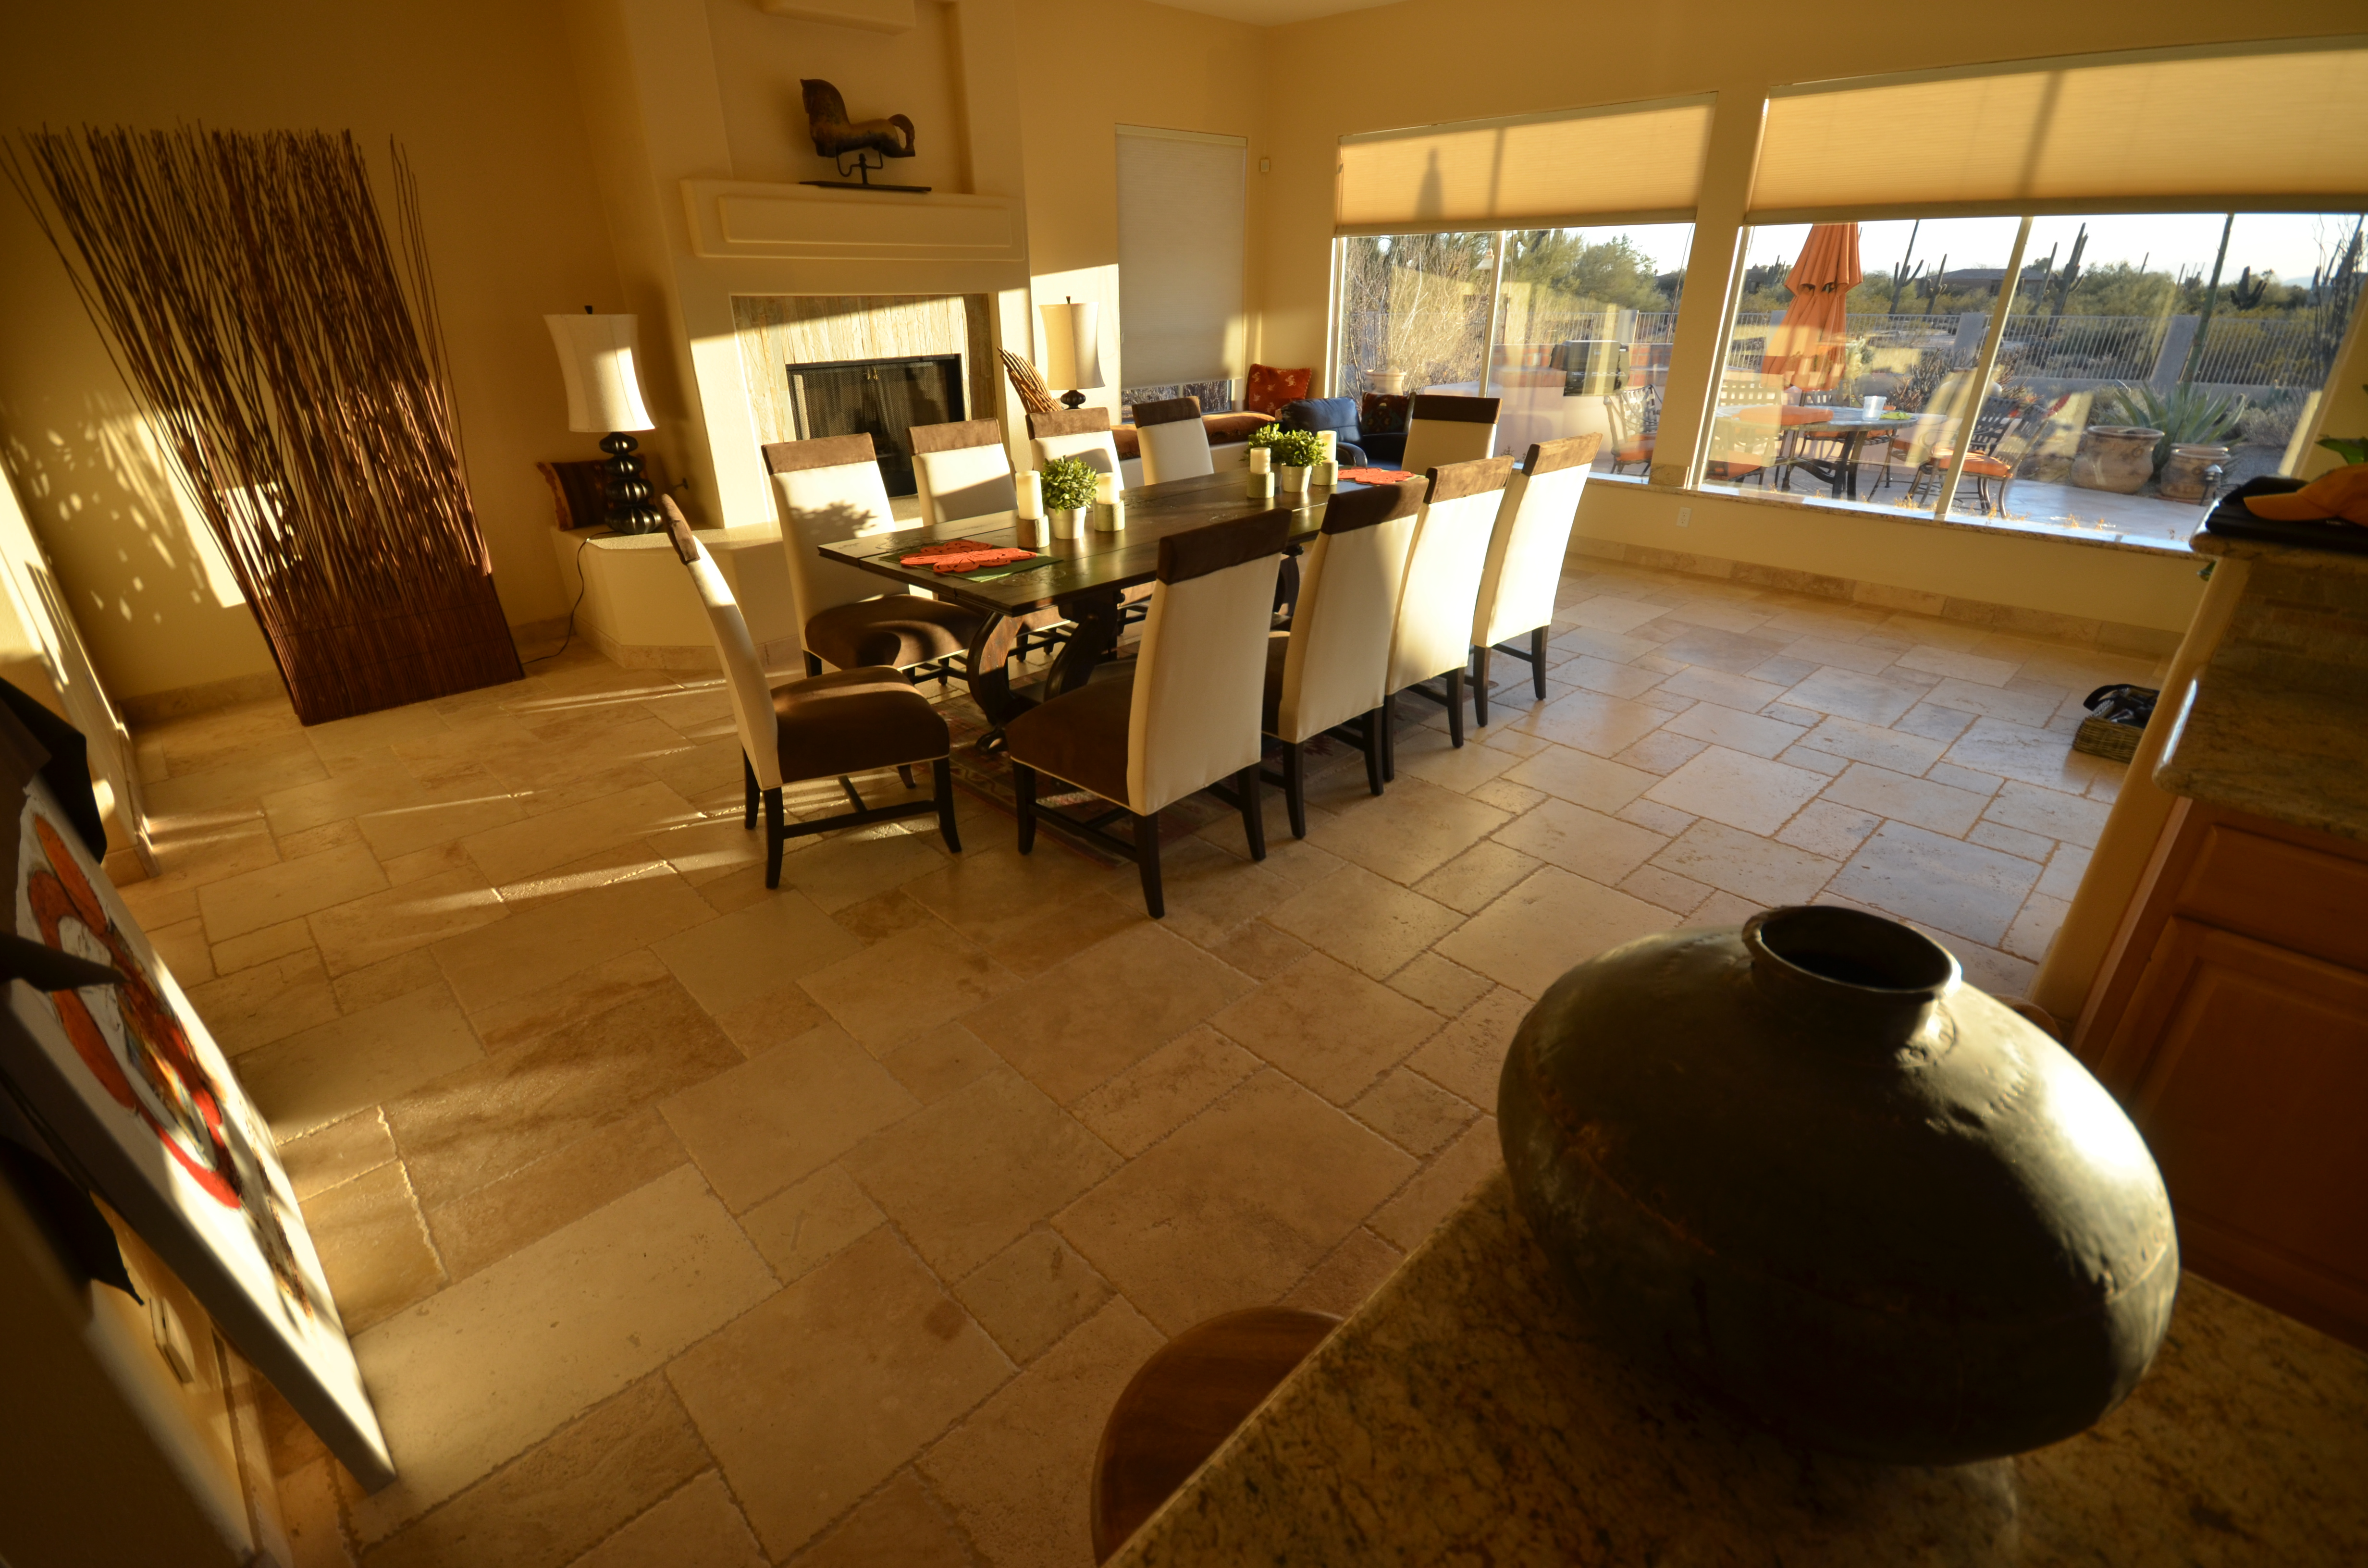 A Scottsdale breakfast or dinner? The dining room is ready!